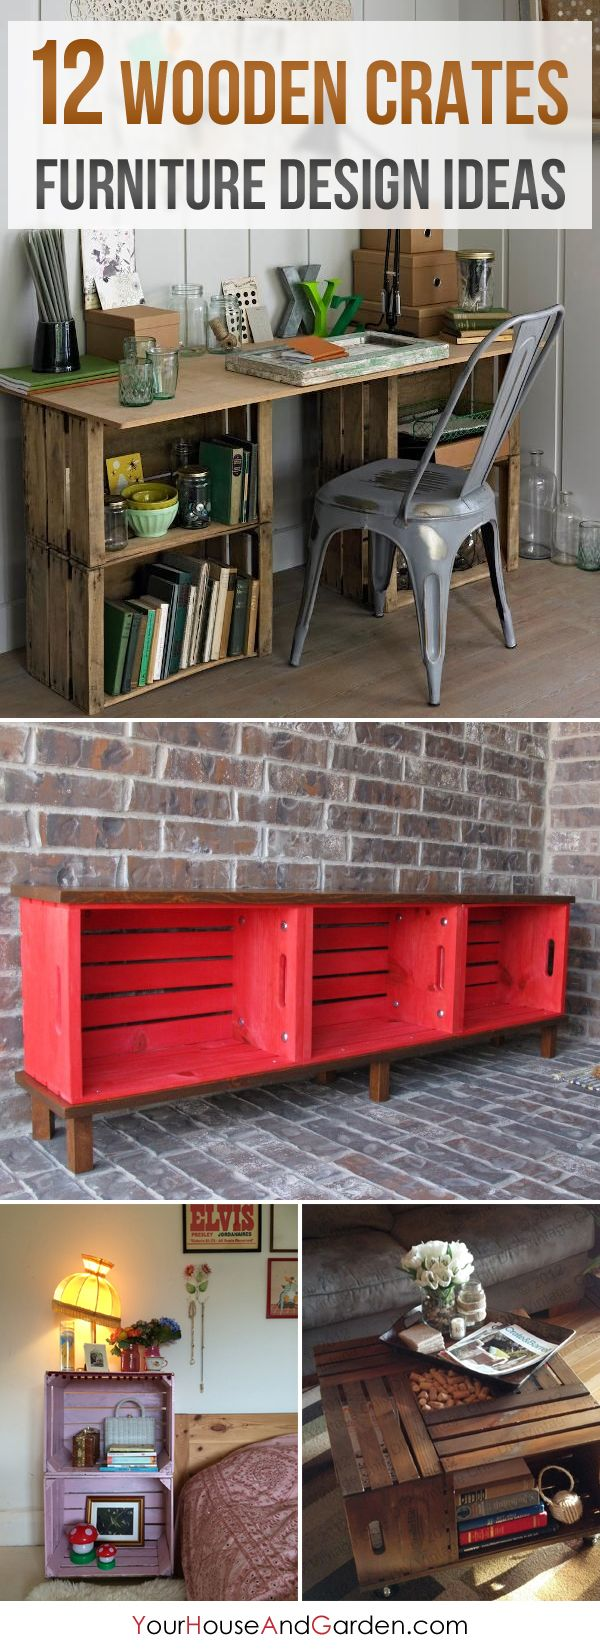 wood crate furniture diy. 12 amazing wooden crates furniture design ideas wood crate diy e